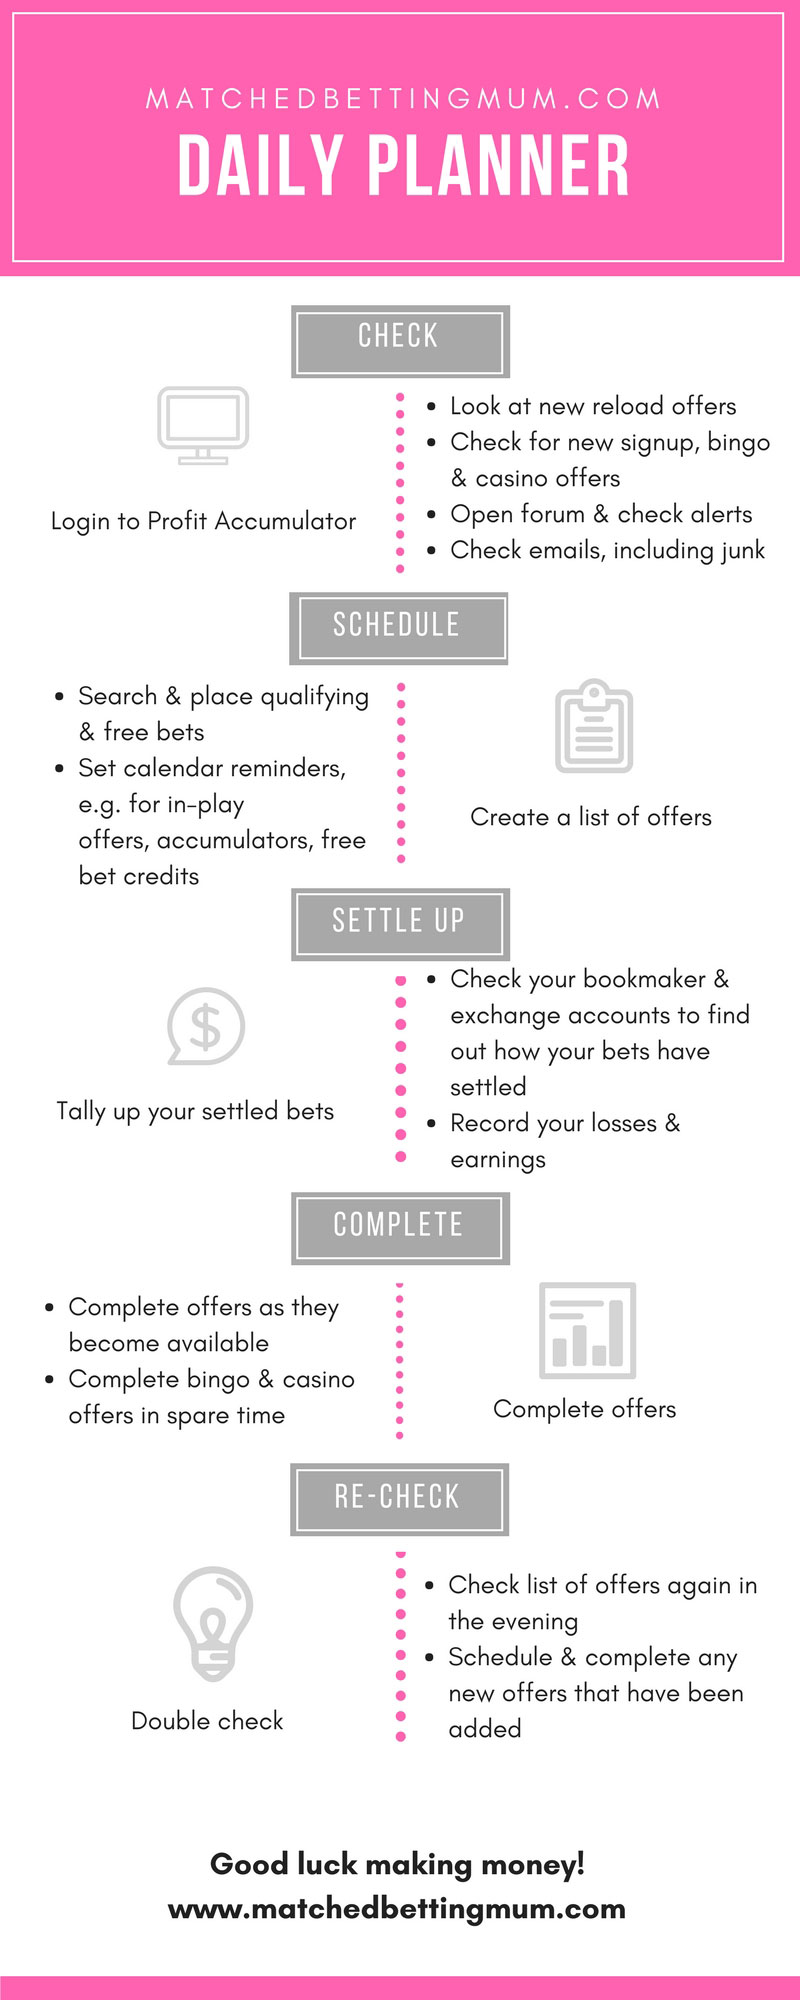 Matched Betting Mum daily planner